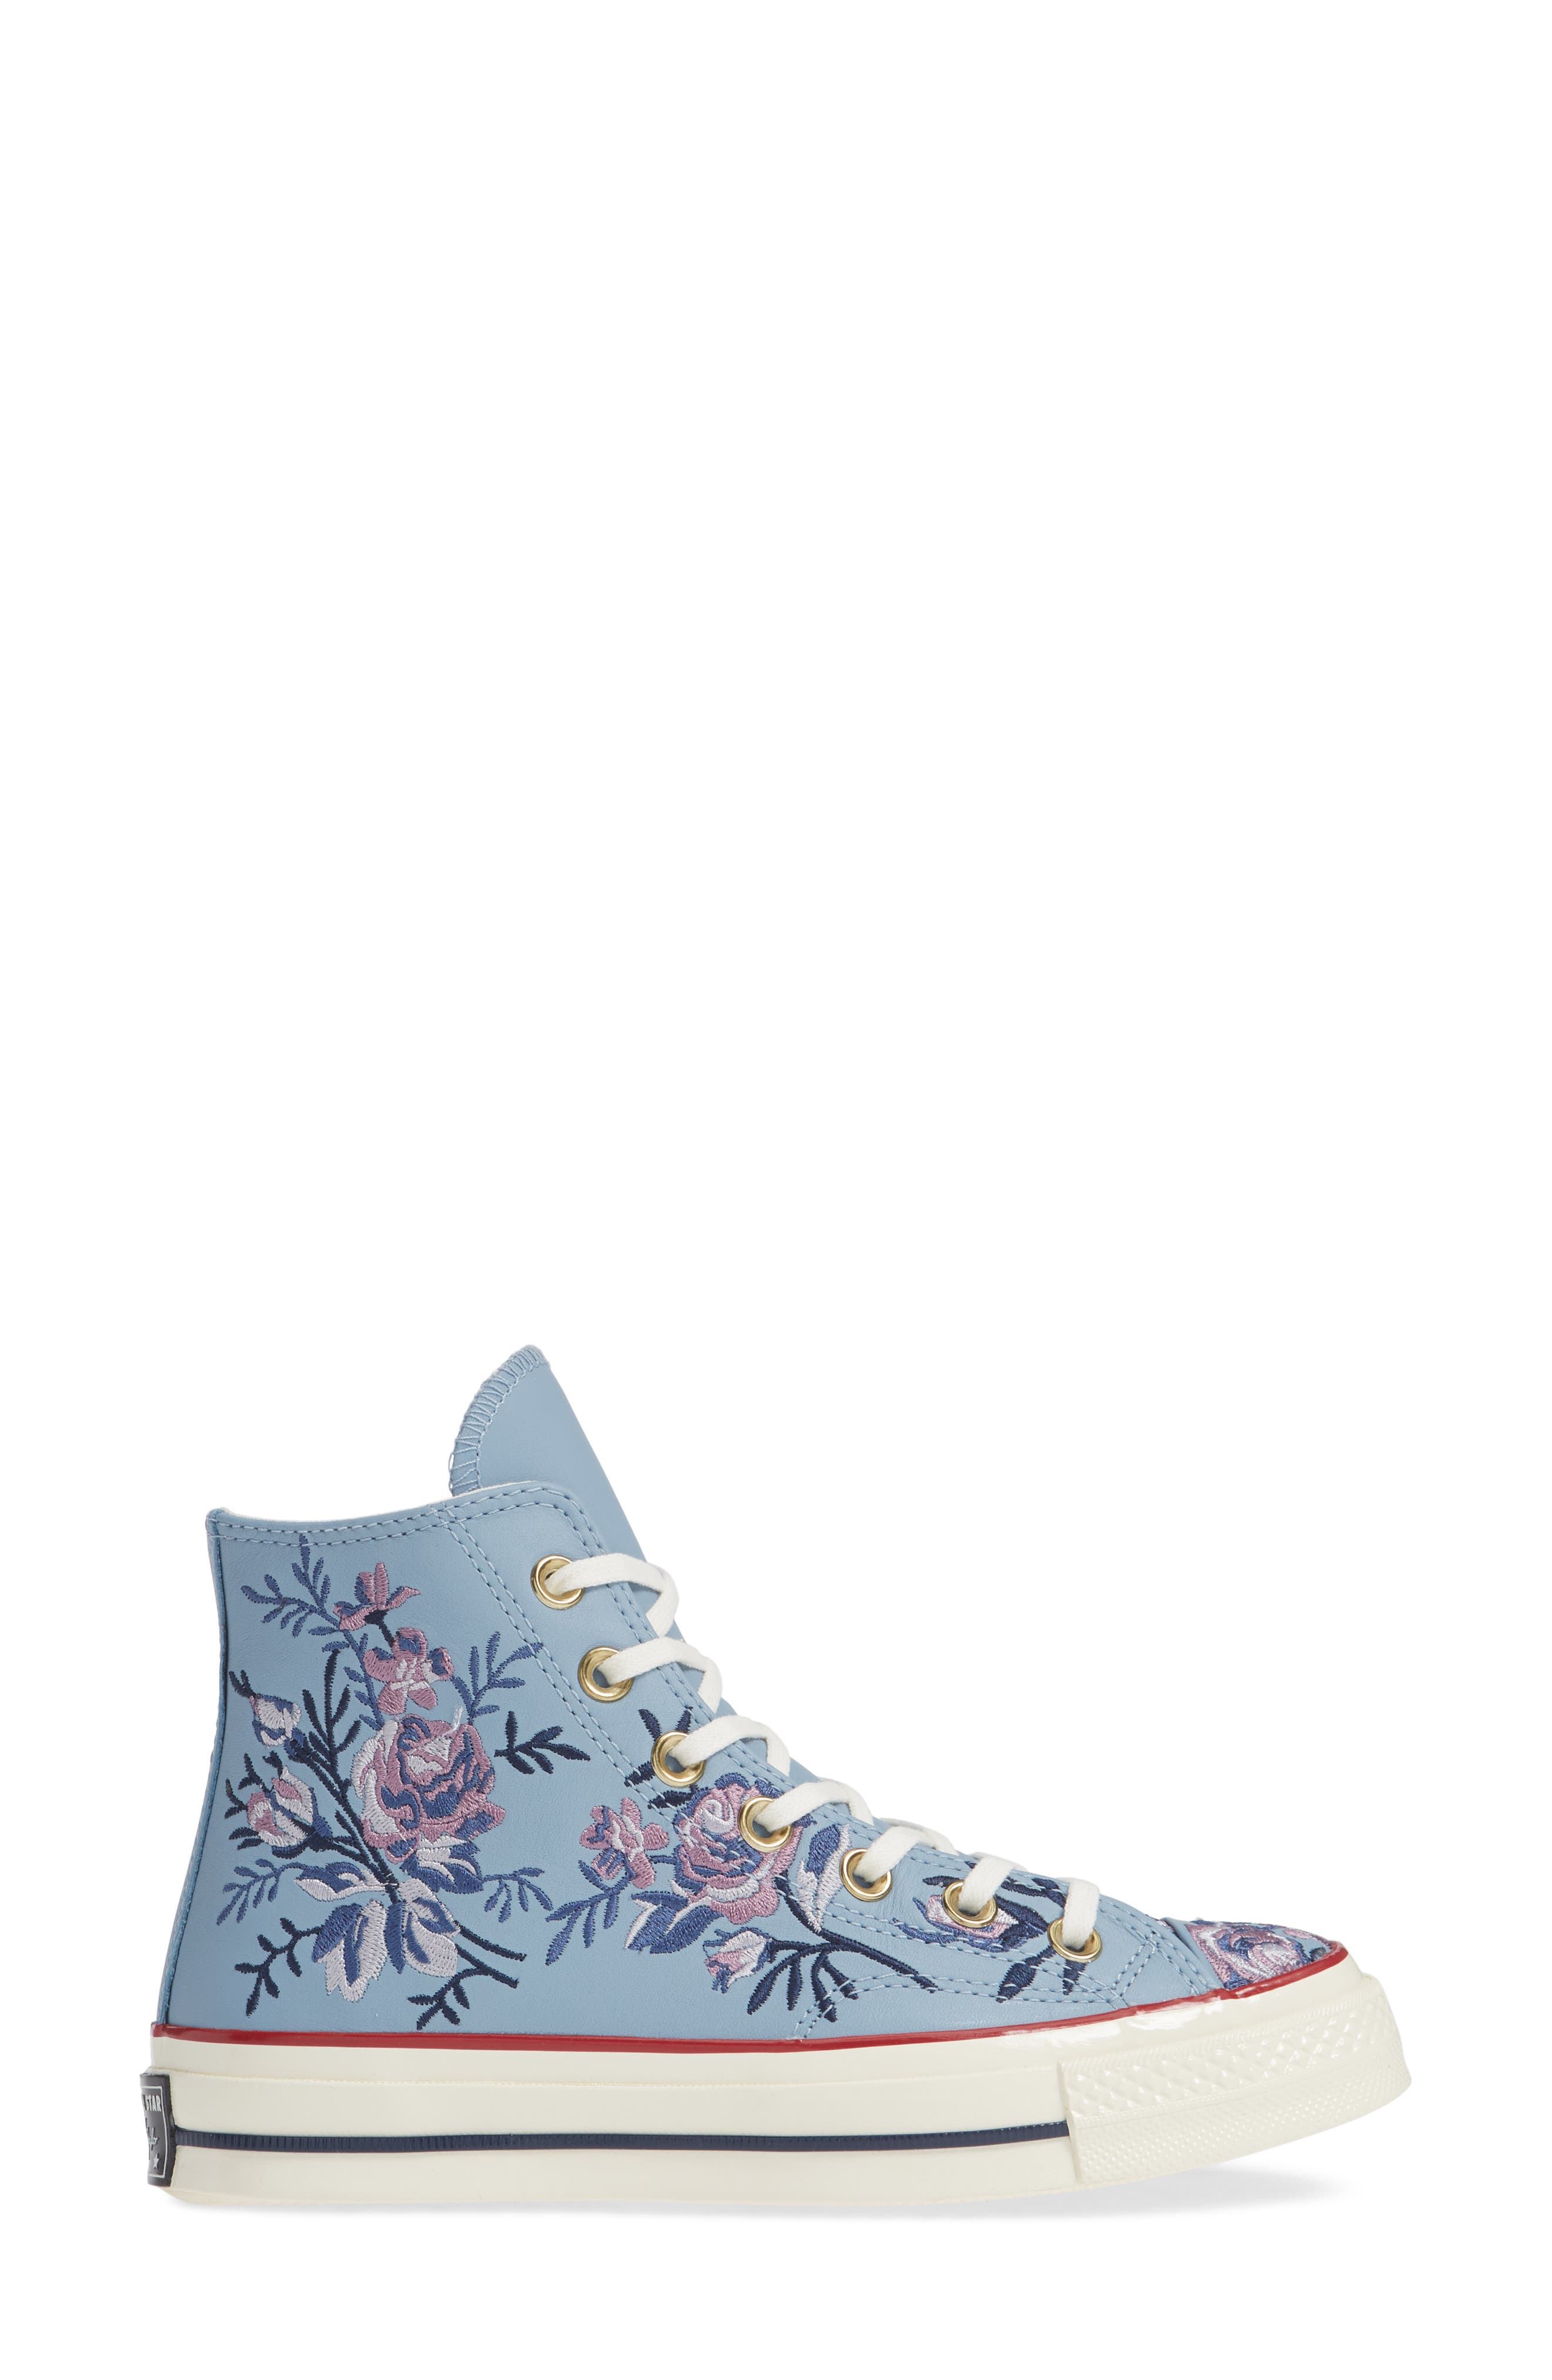 Chuck Taylor<sup>®</sup> All Star<sup>®</sup> Parkway Floral 70 High Top Sneaker,                             Alternate thumbnail 3, color,                             WASHED DENIM LEATHER